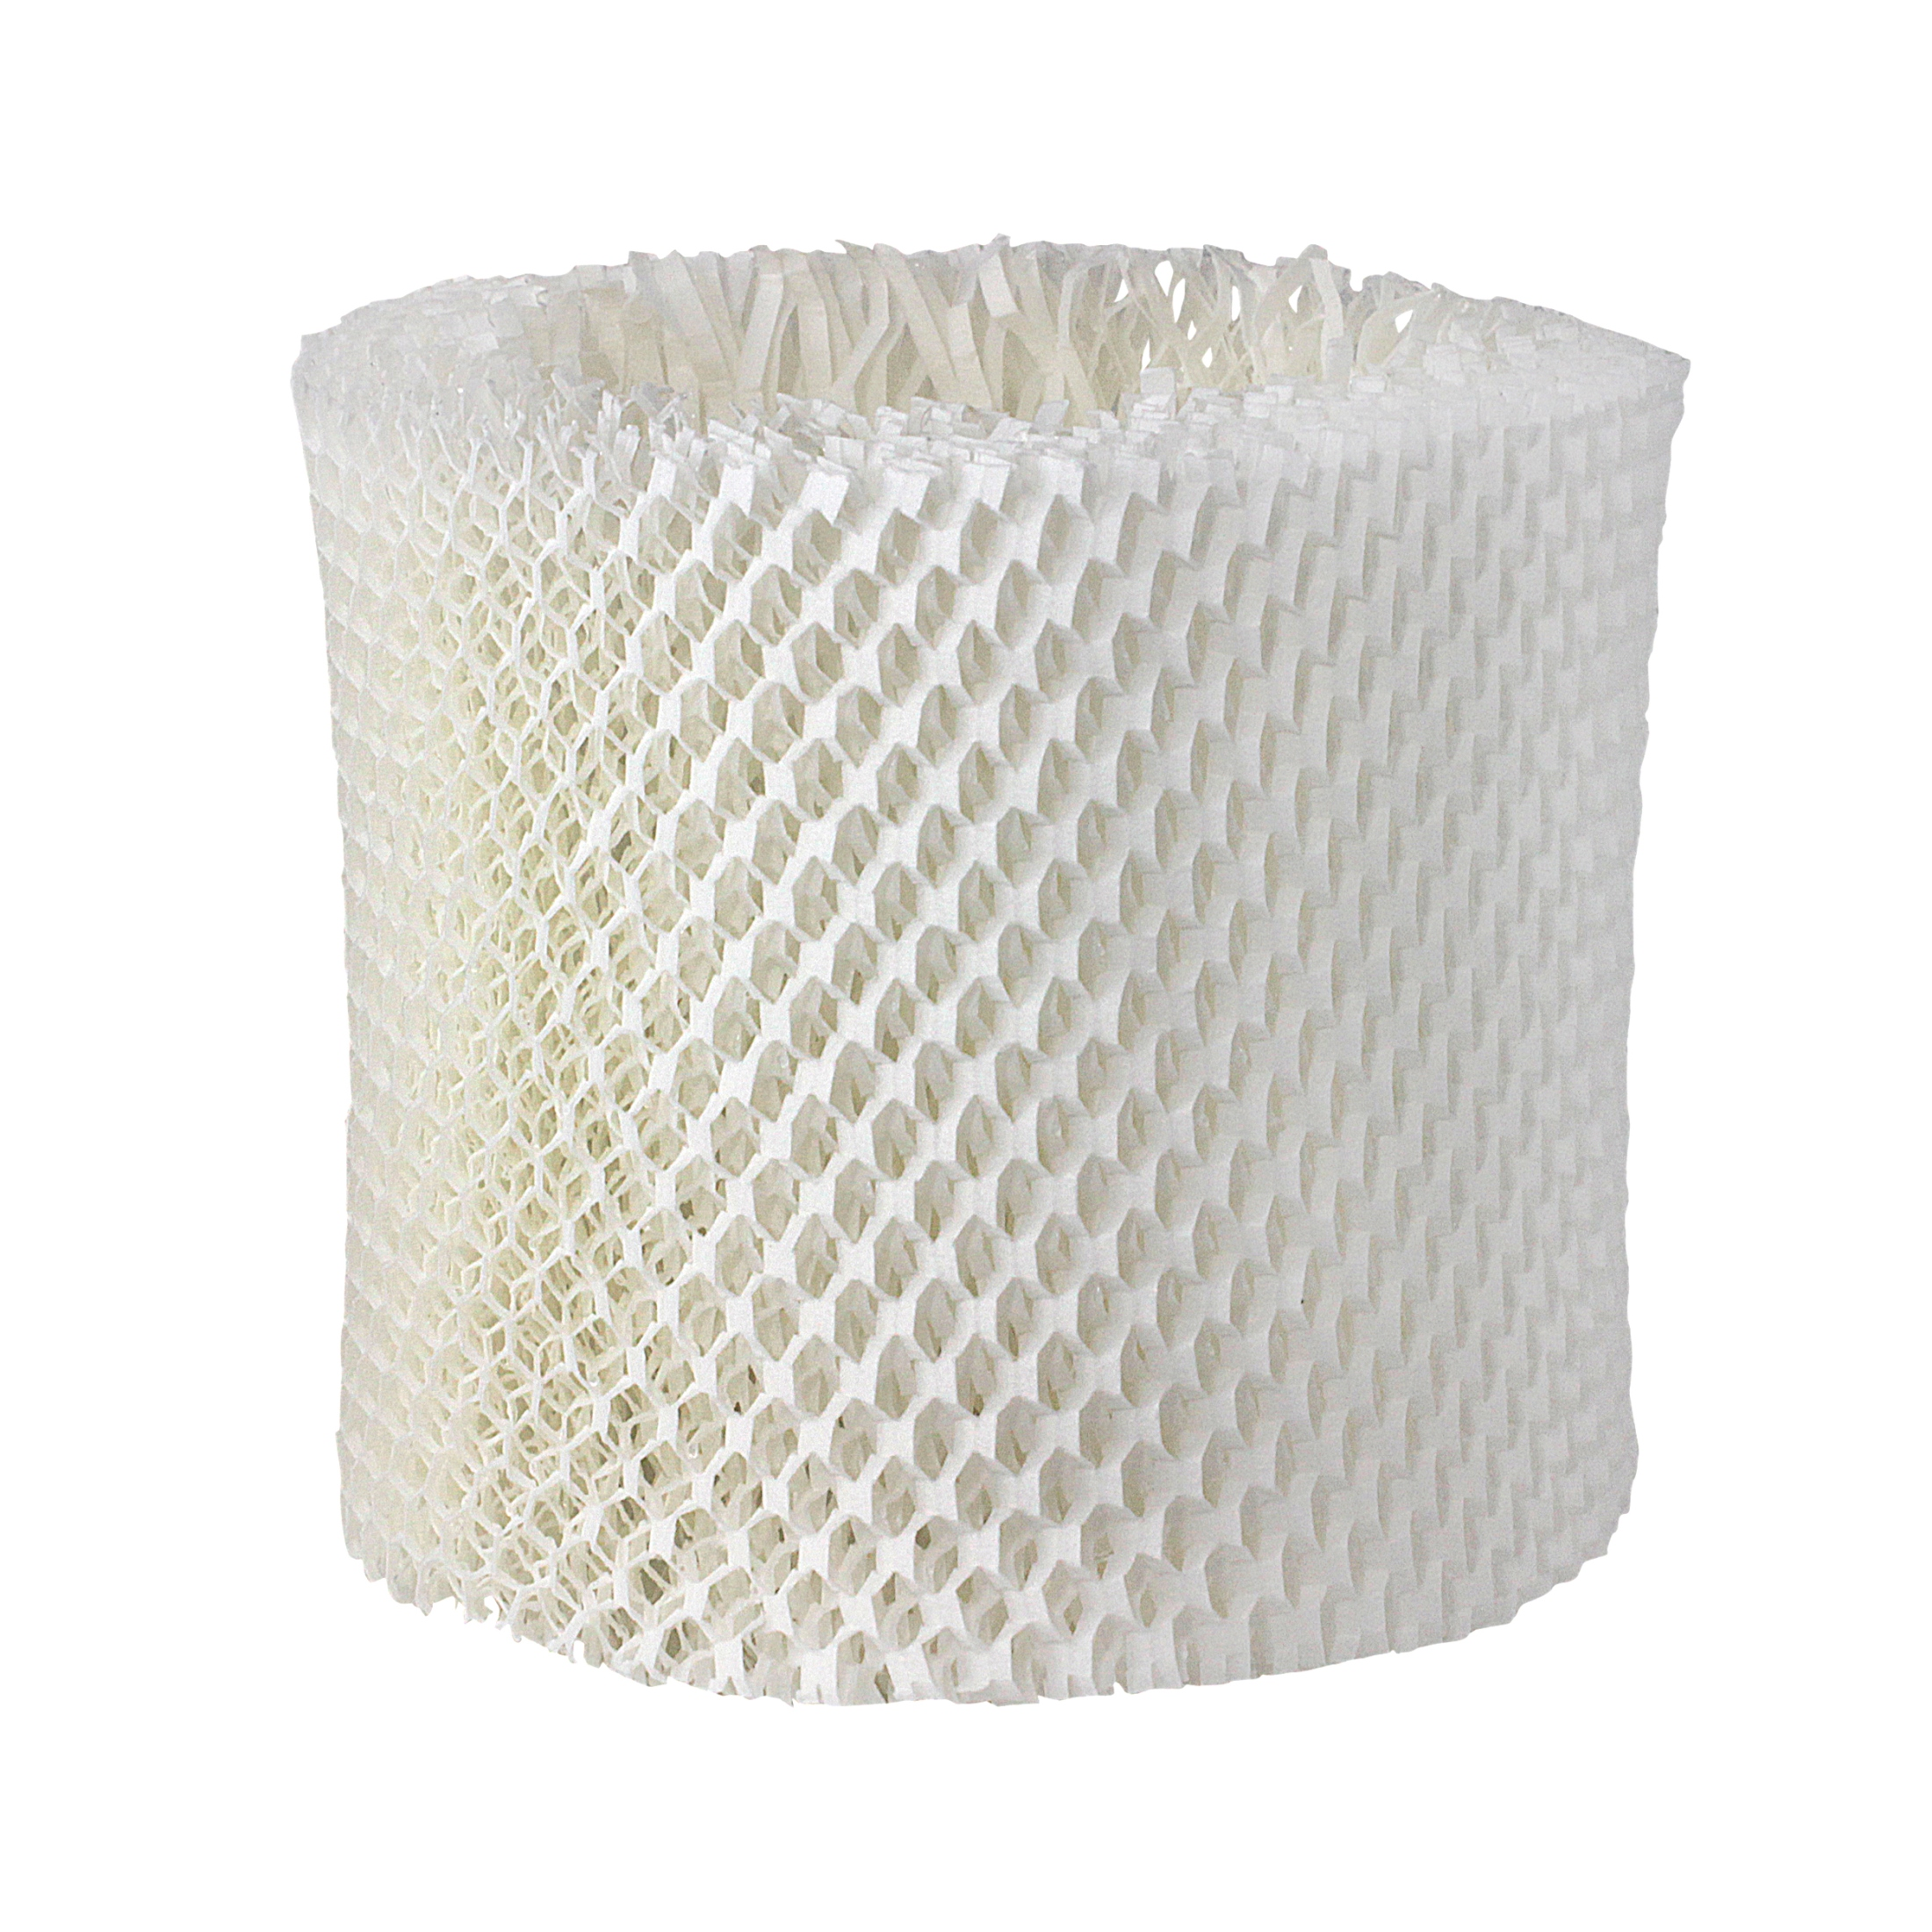 WF2 Kaz & Vicks Replacement Humidifier Filter Fits Vicks 3500n & mor  #7C704F